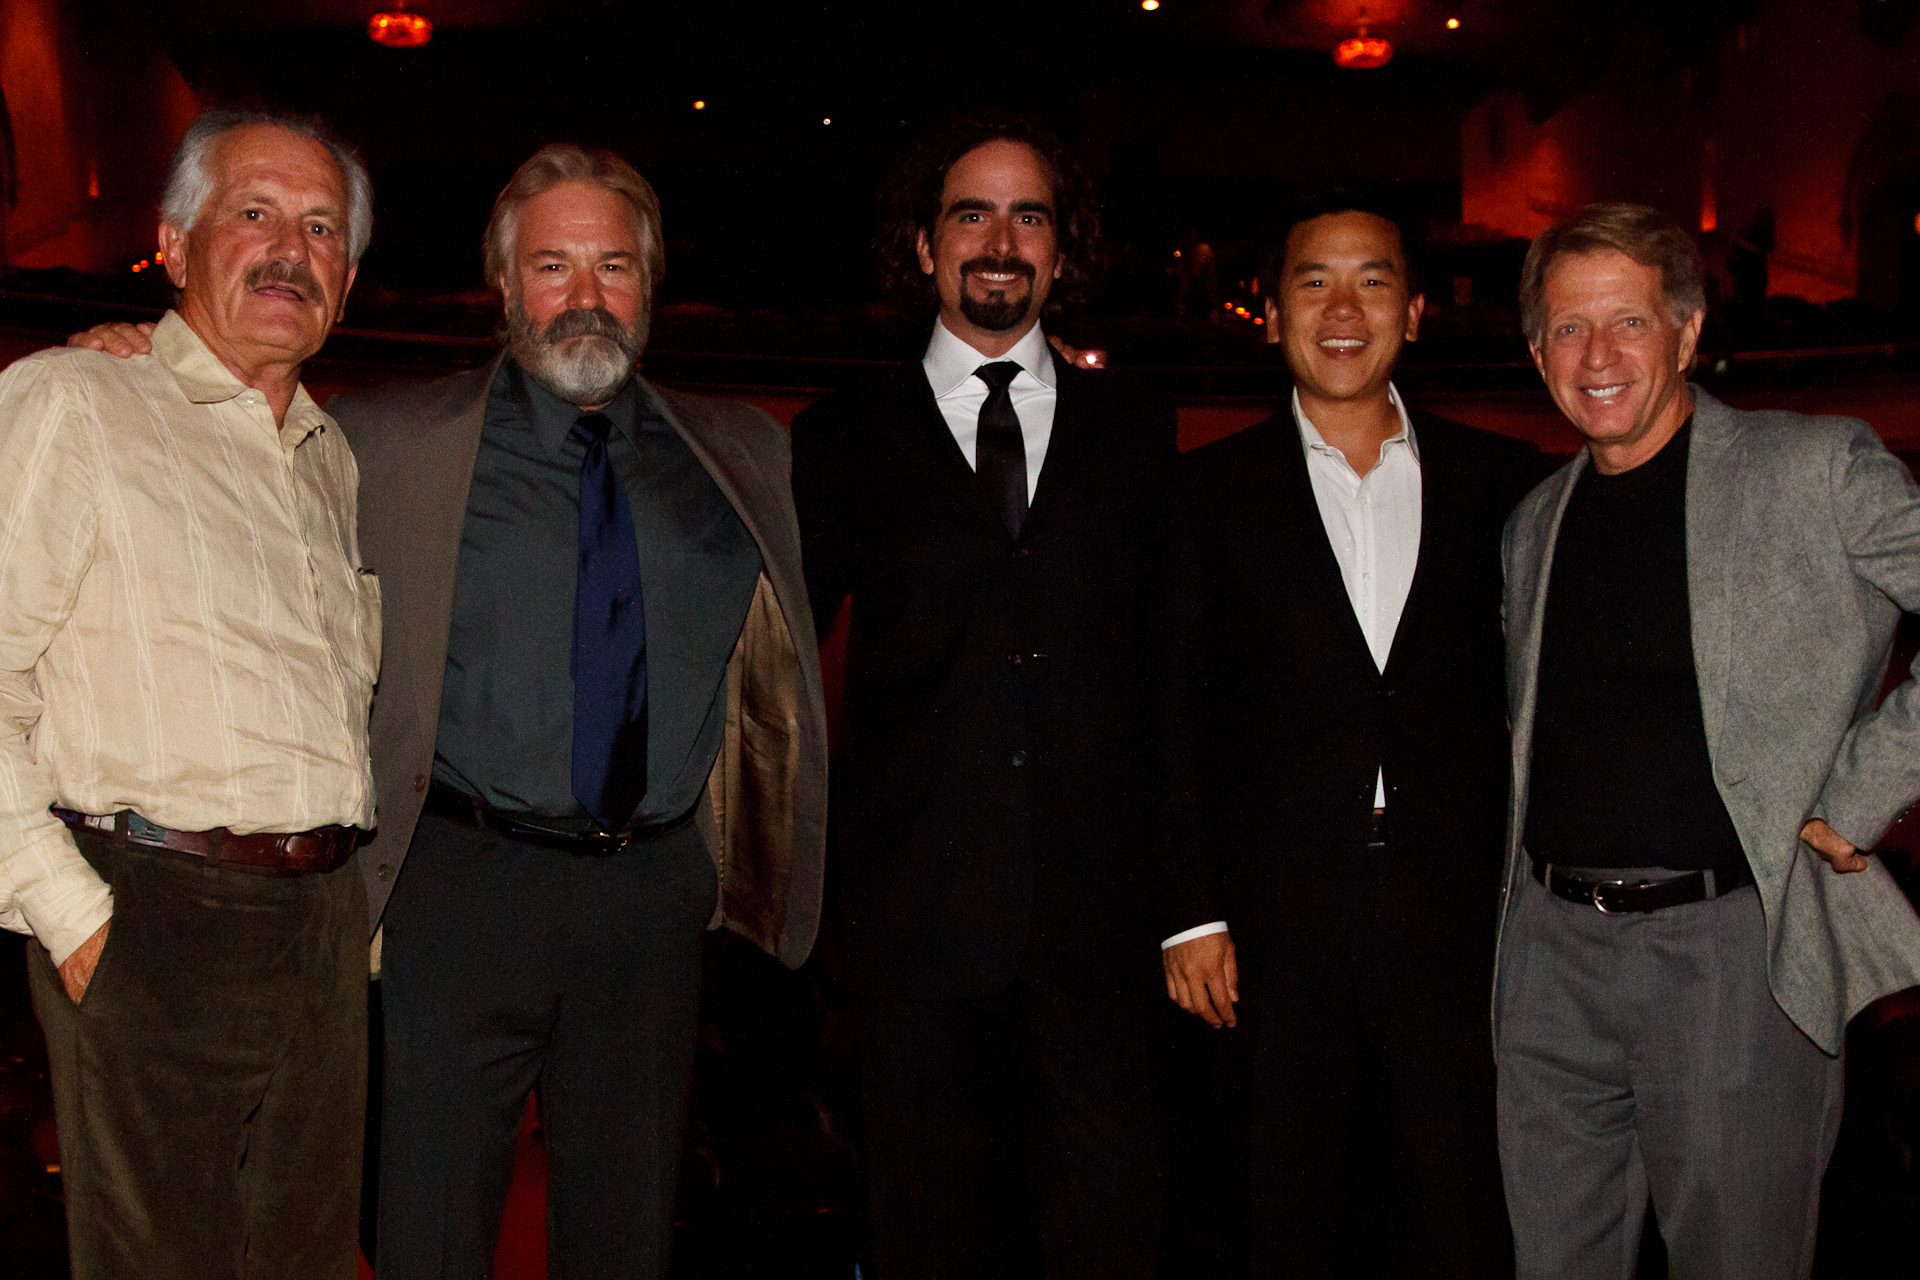 Speakers: Rick Rosenthal, Chuck Davis, Berkley White, Eric Cheng and Stephen Frink. Monterey Underwater Film Festival, September 10, 2011.